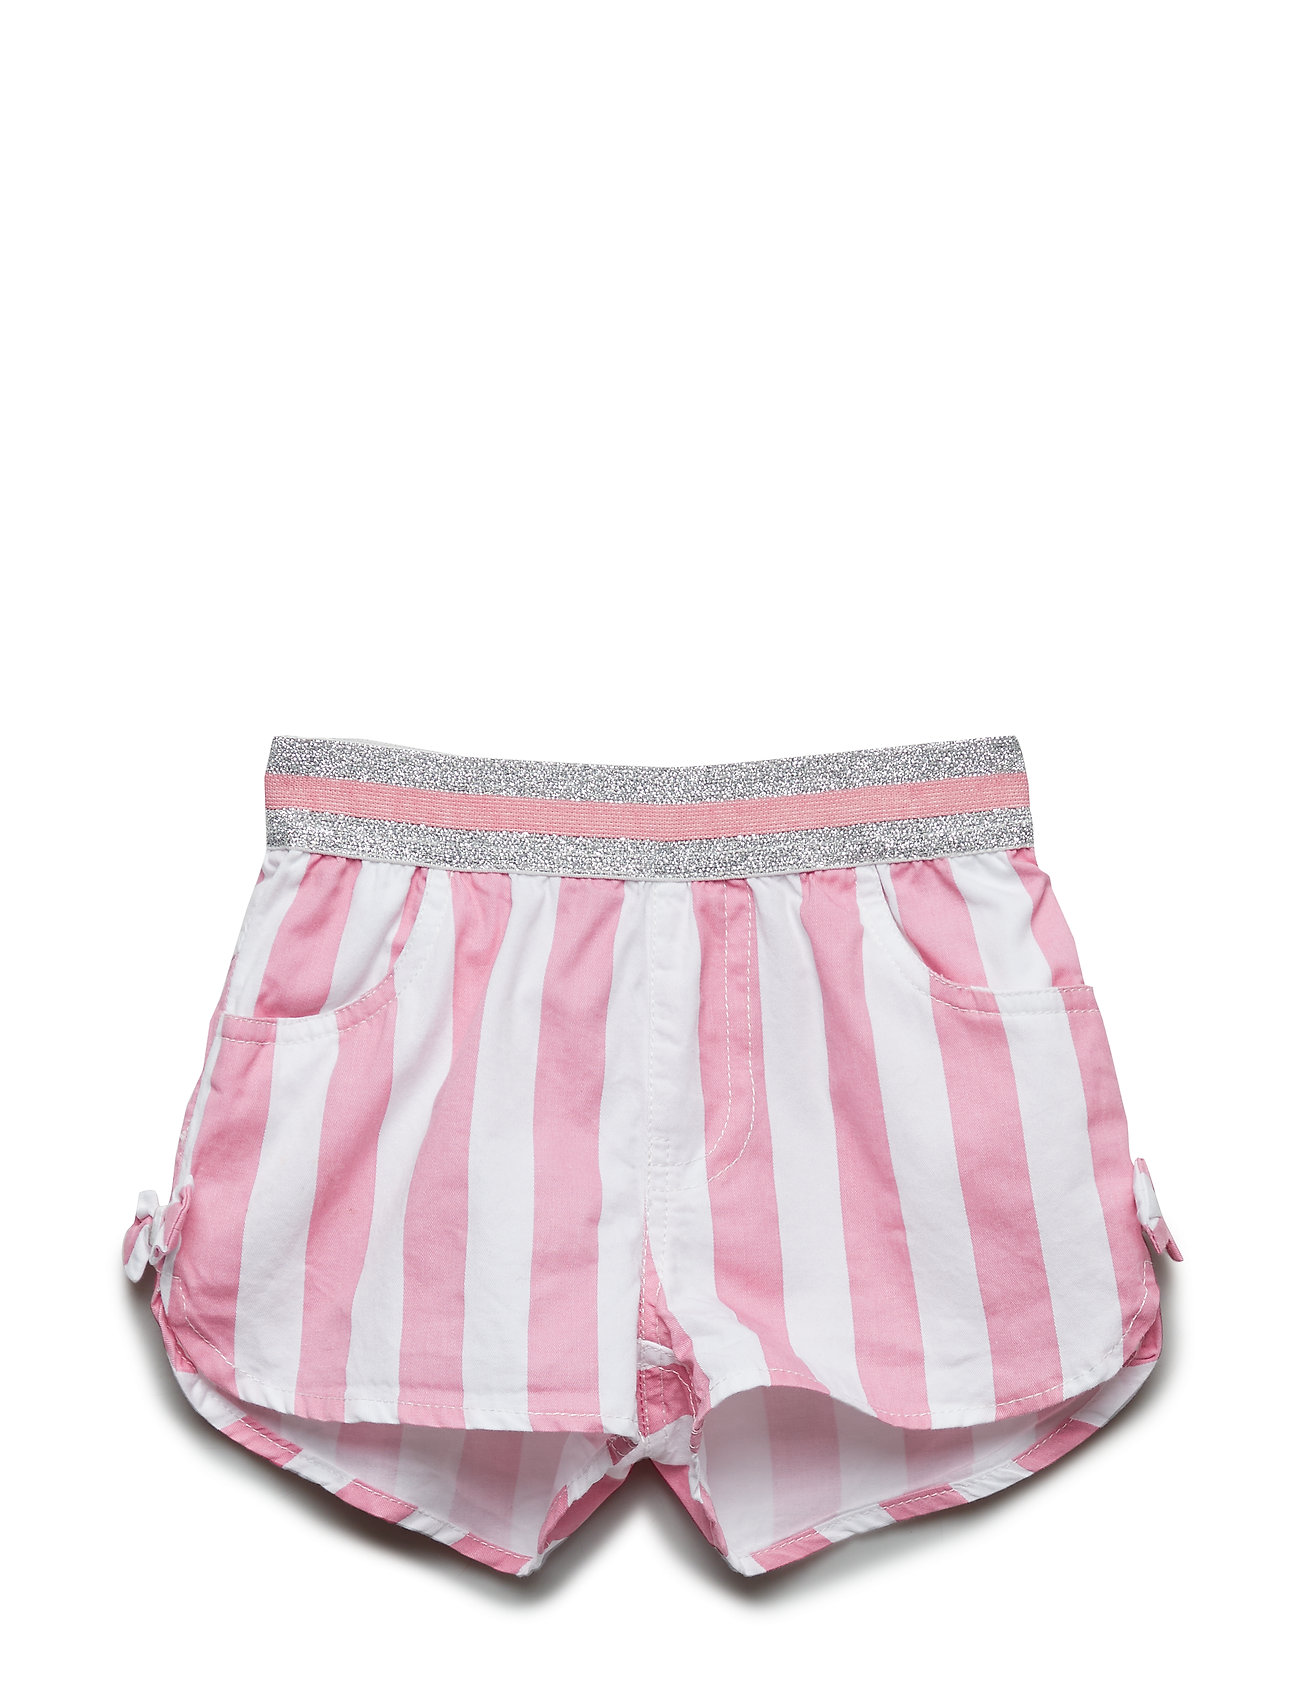 Hust & Claire Henna - Shorts - PRISM PINK